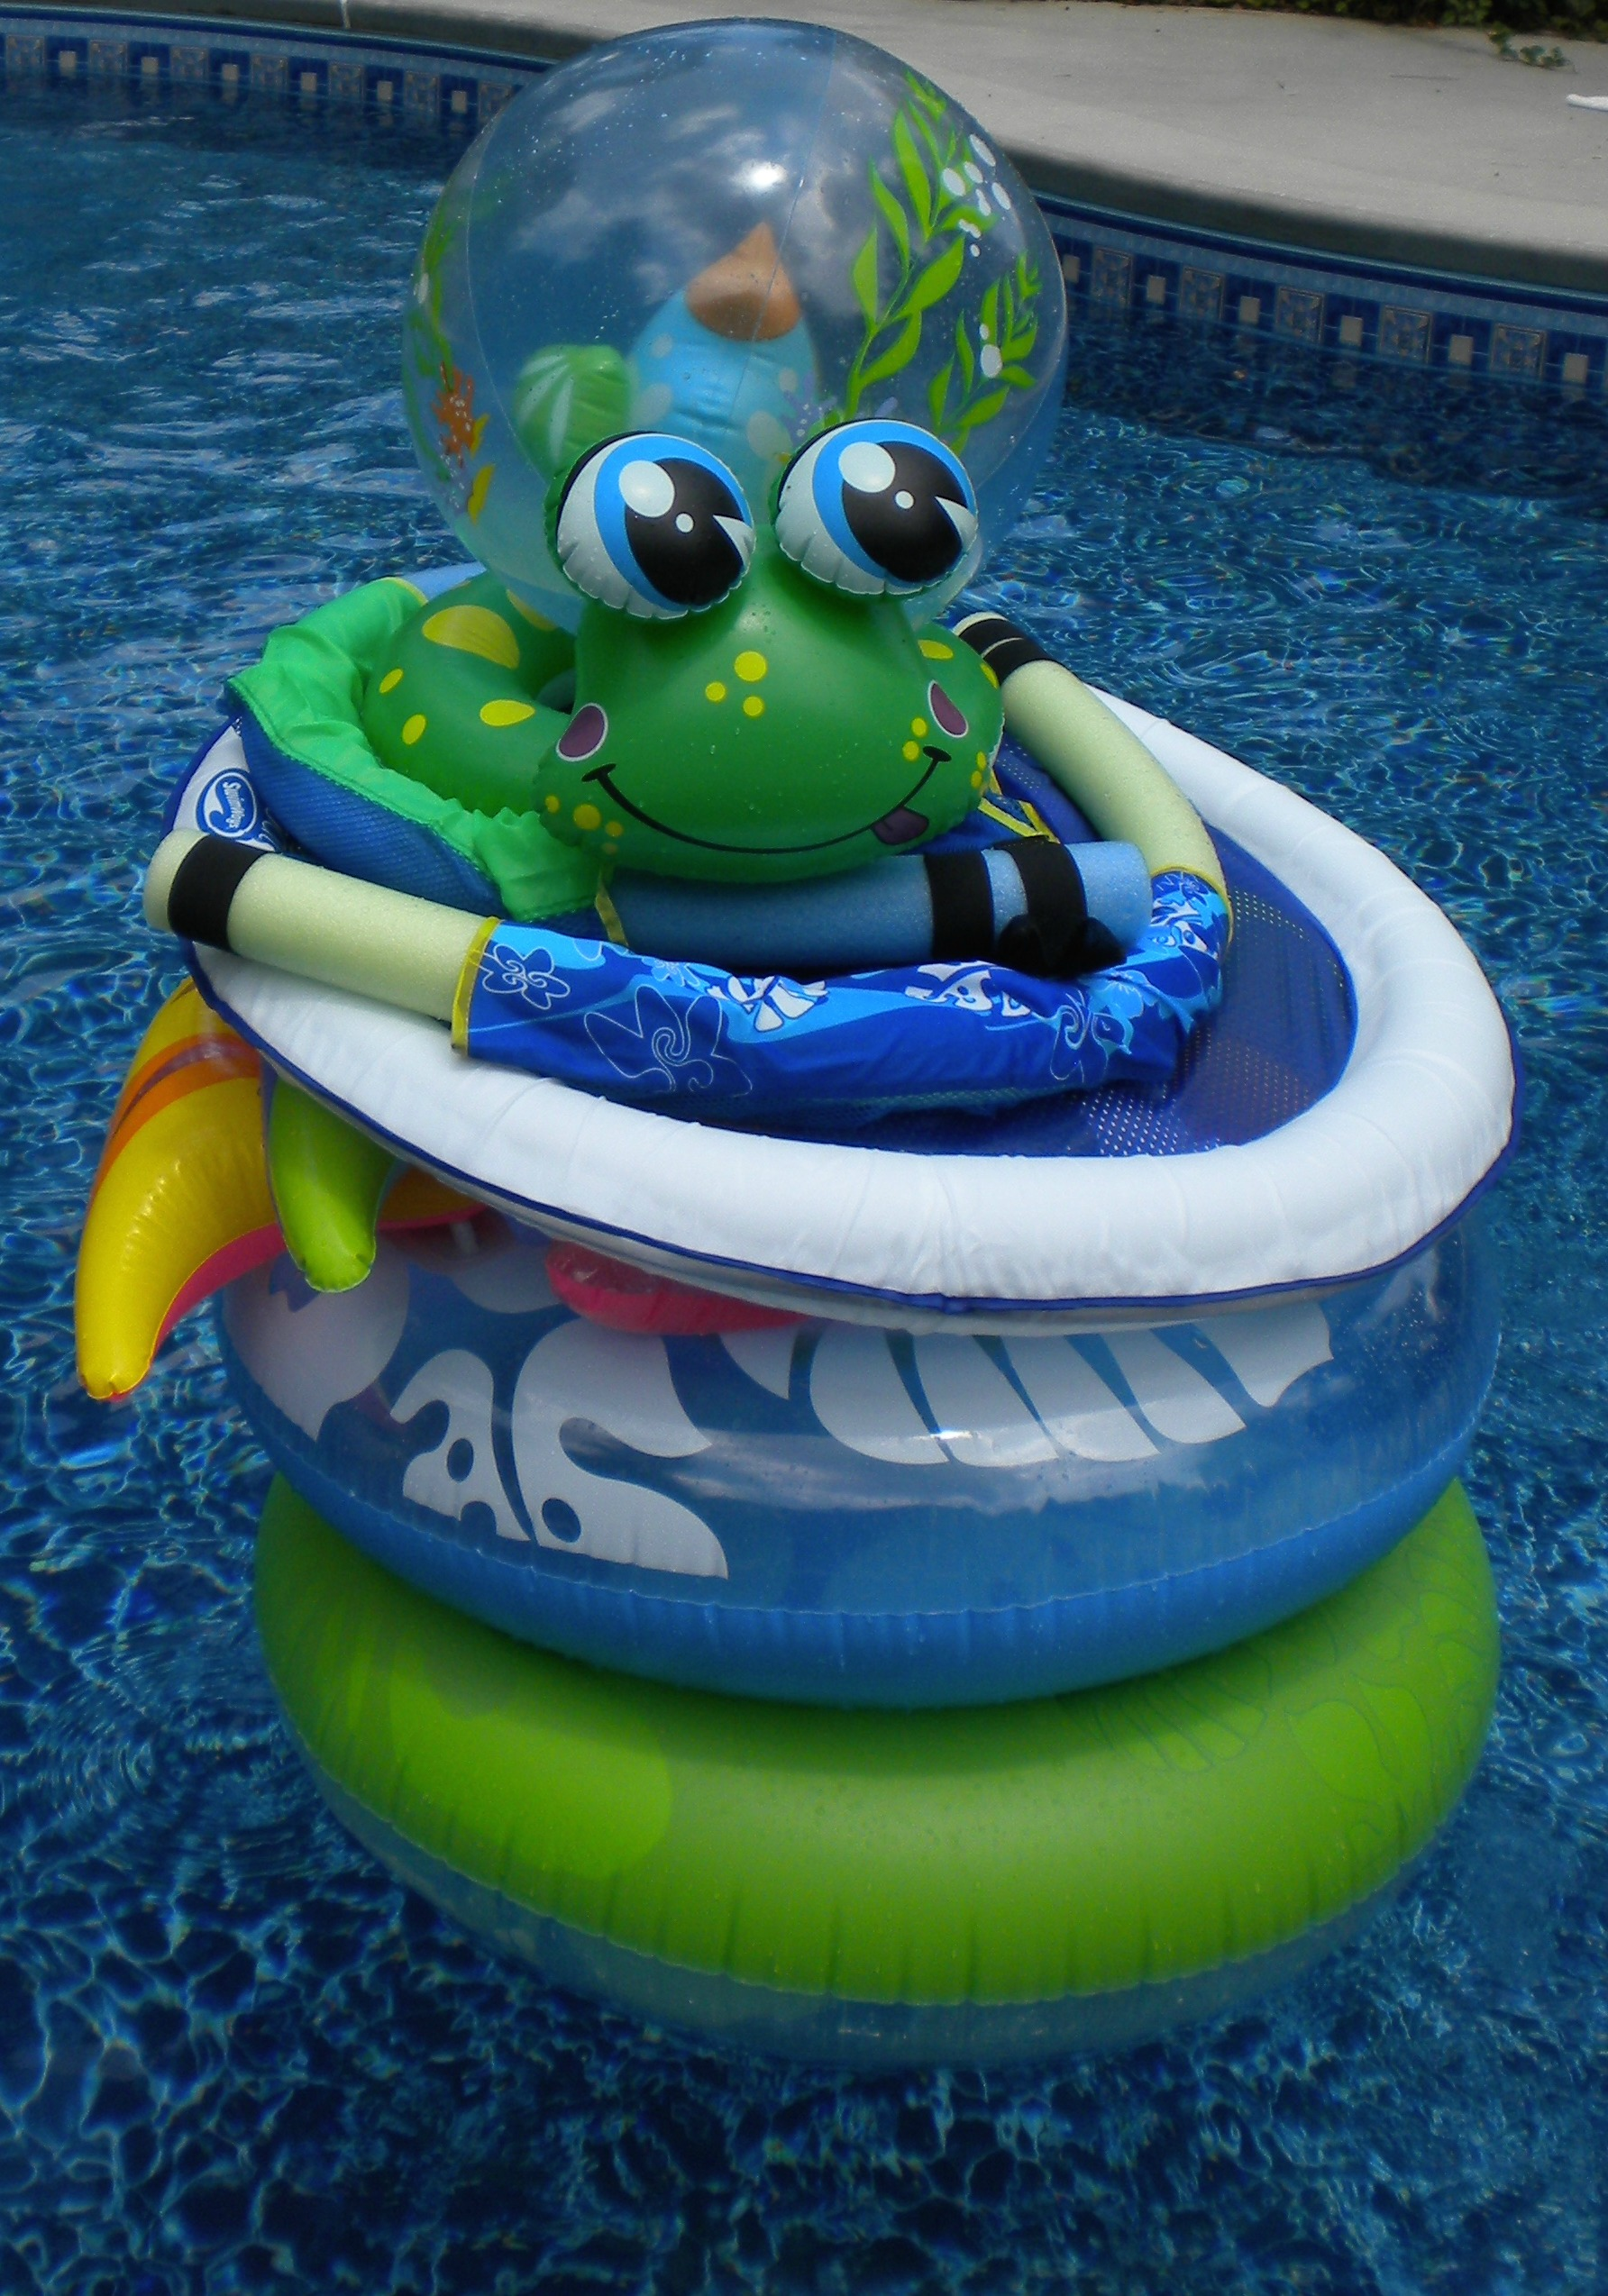 Fun Swimming Pool Floats From Reclining To Spring Floats